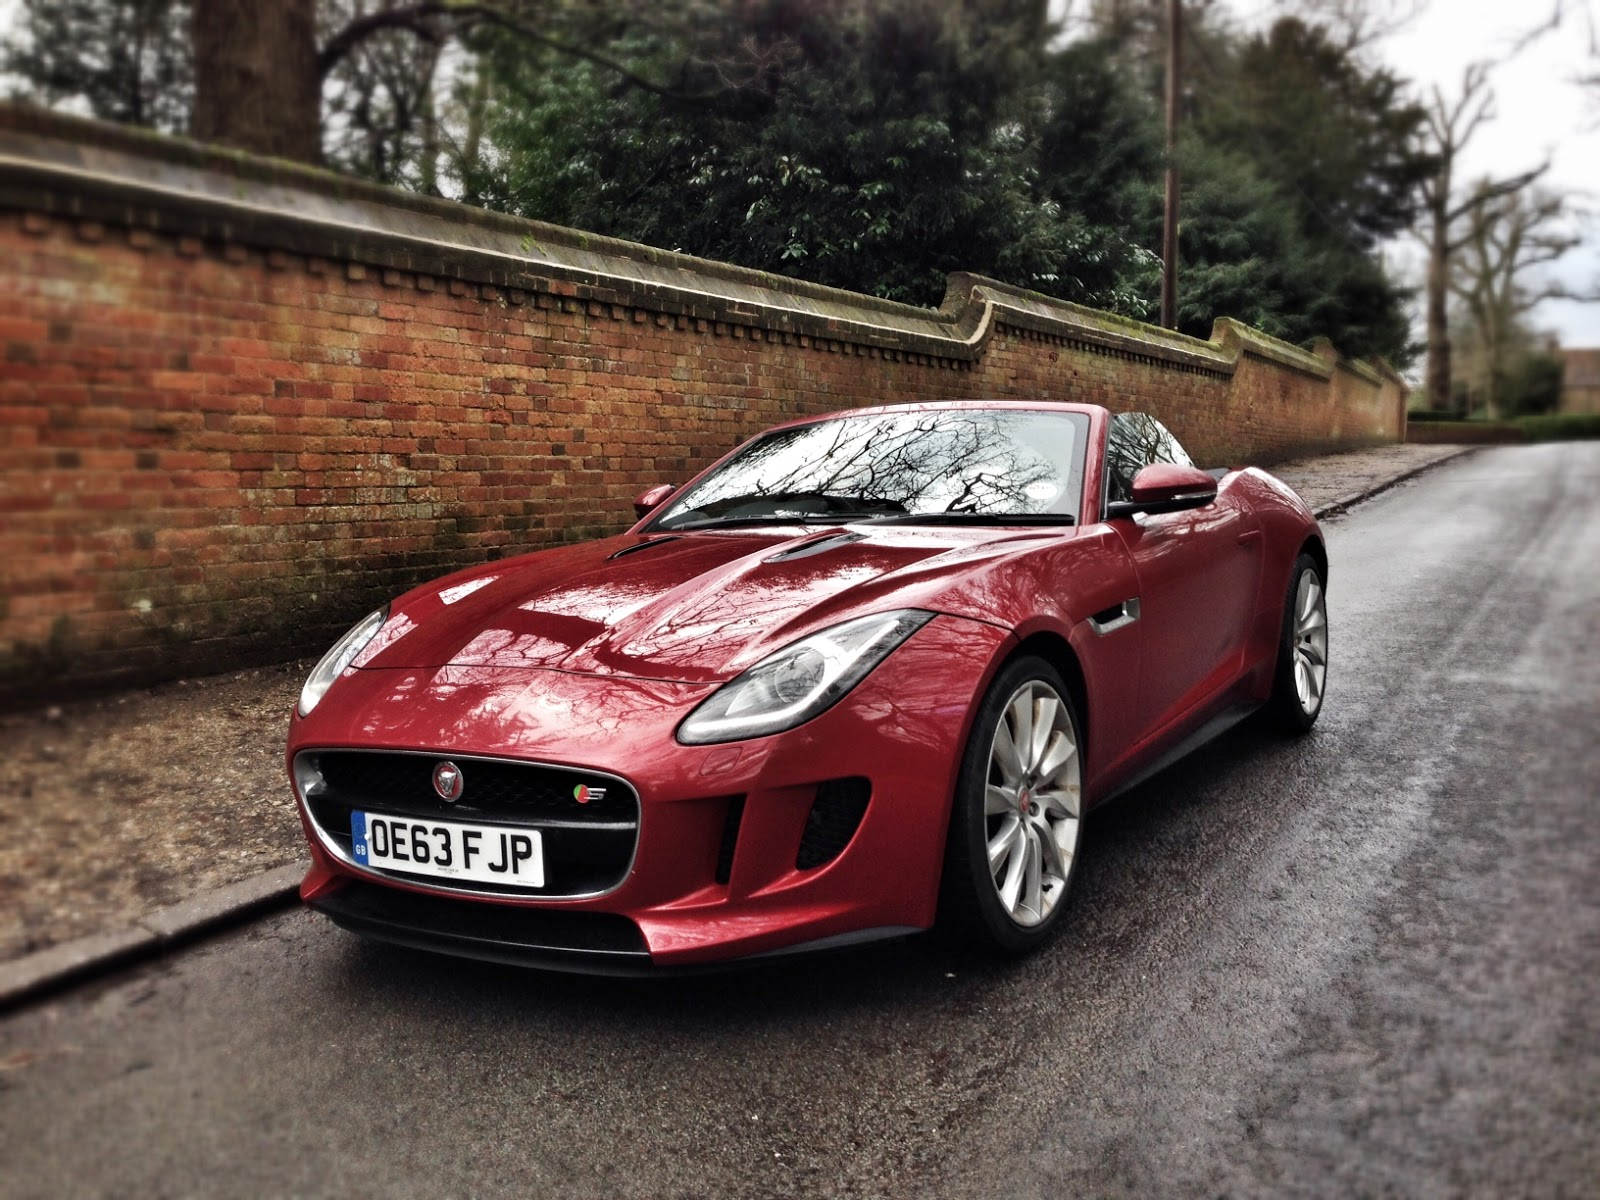 2014 Jaguar F-Type V8 S Convertible